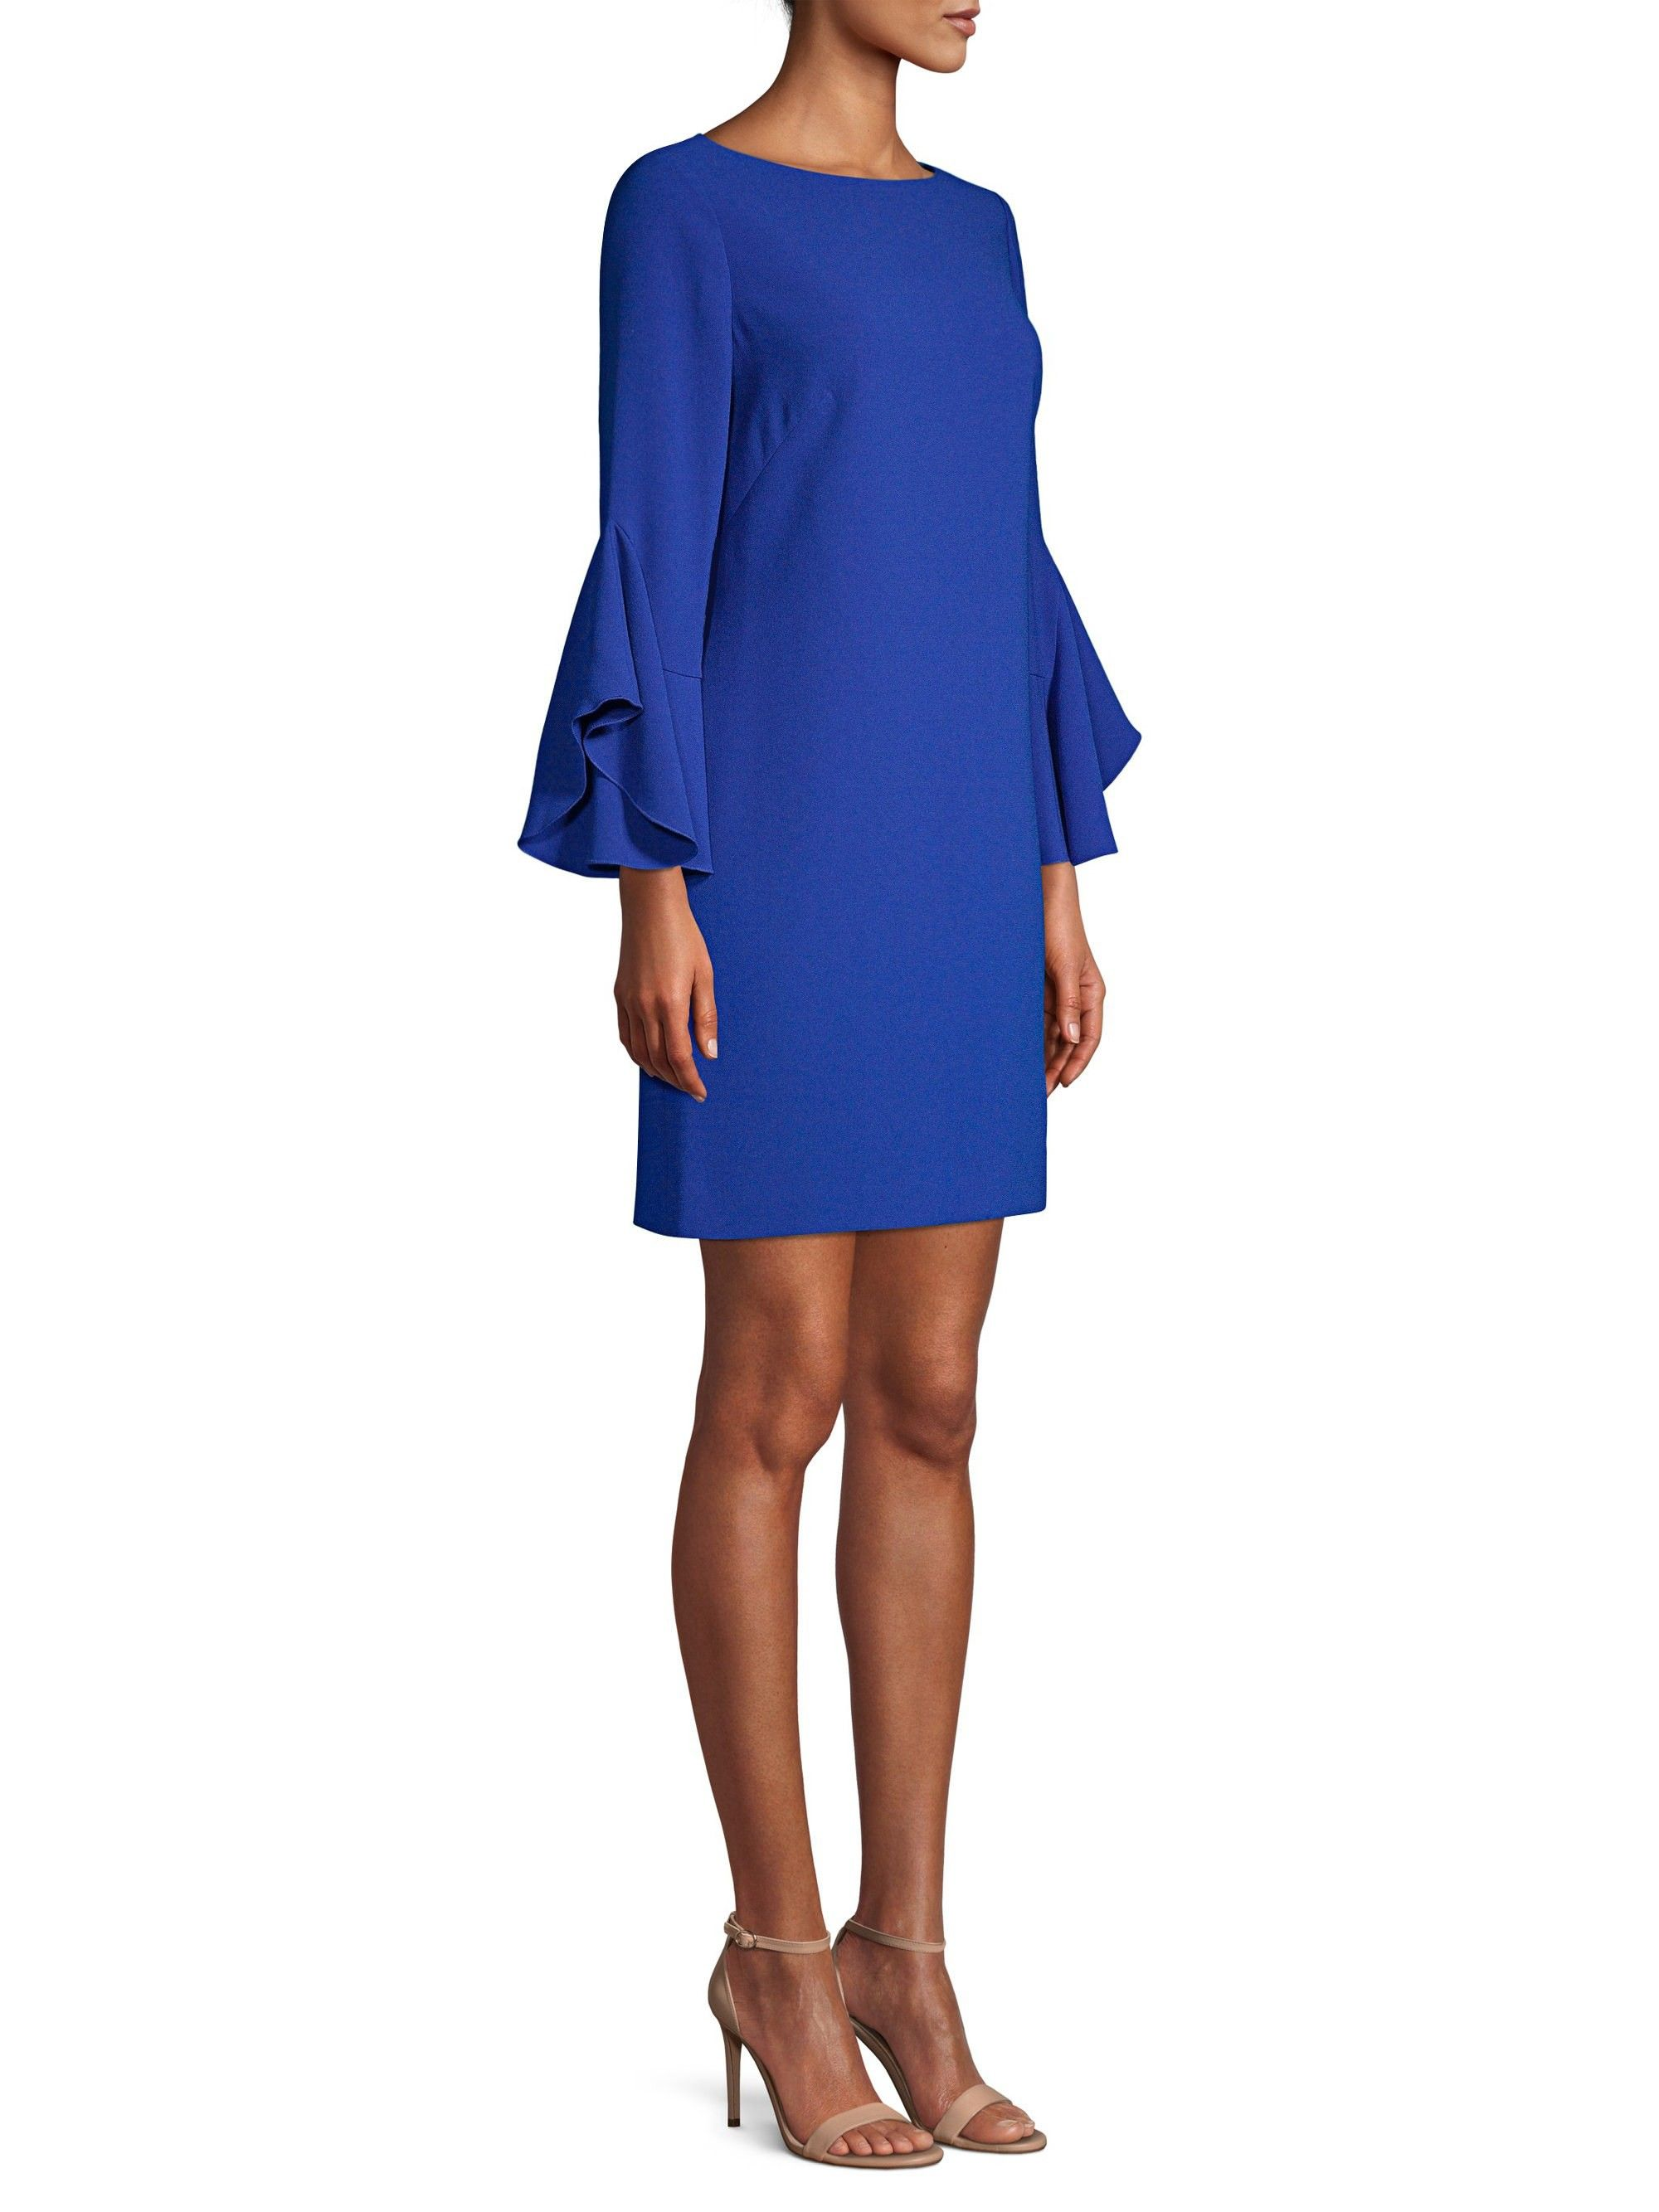 c637f78b4e80 Elie Tahari Dori Flare-Sleeve Sheath Dress - Cosmic Cobalt 14 ...